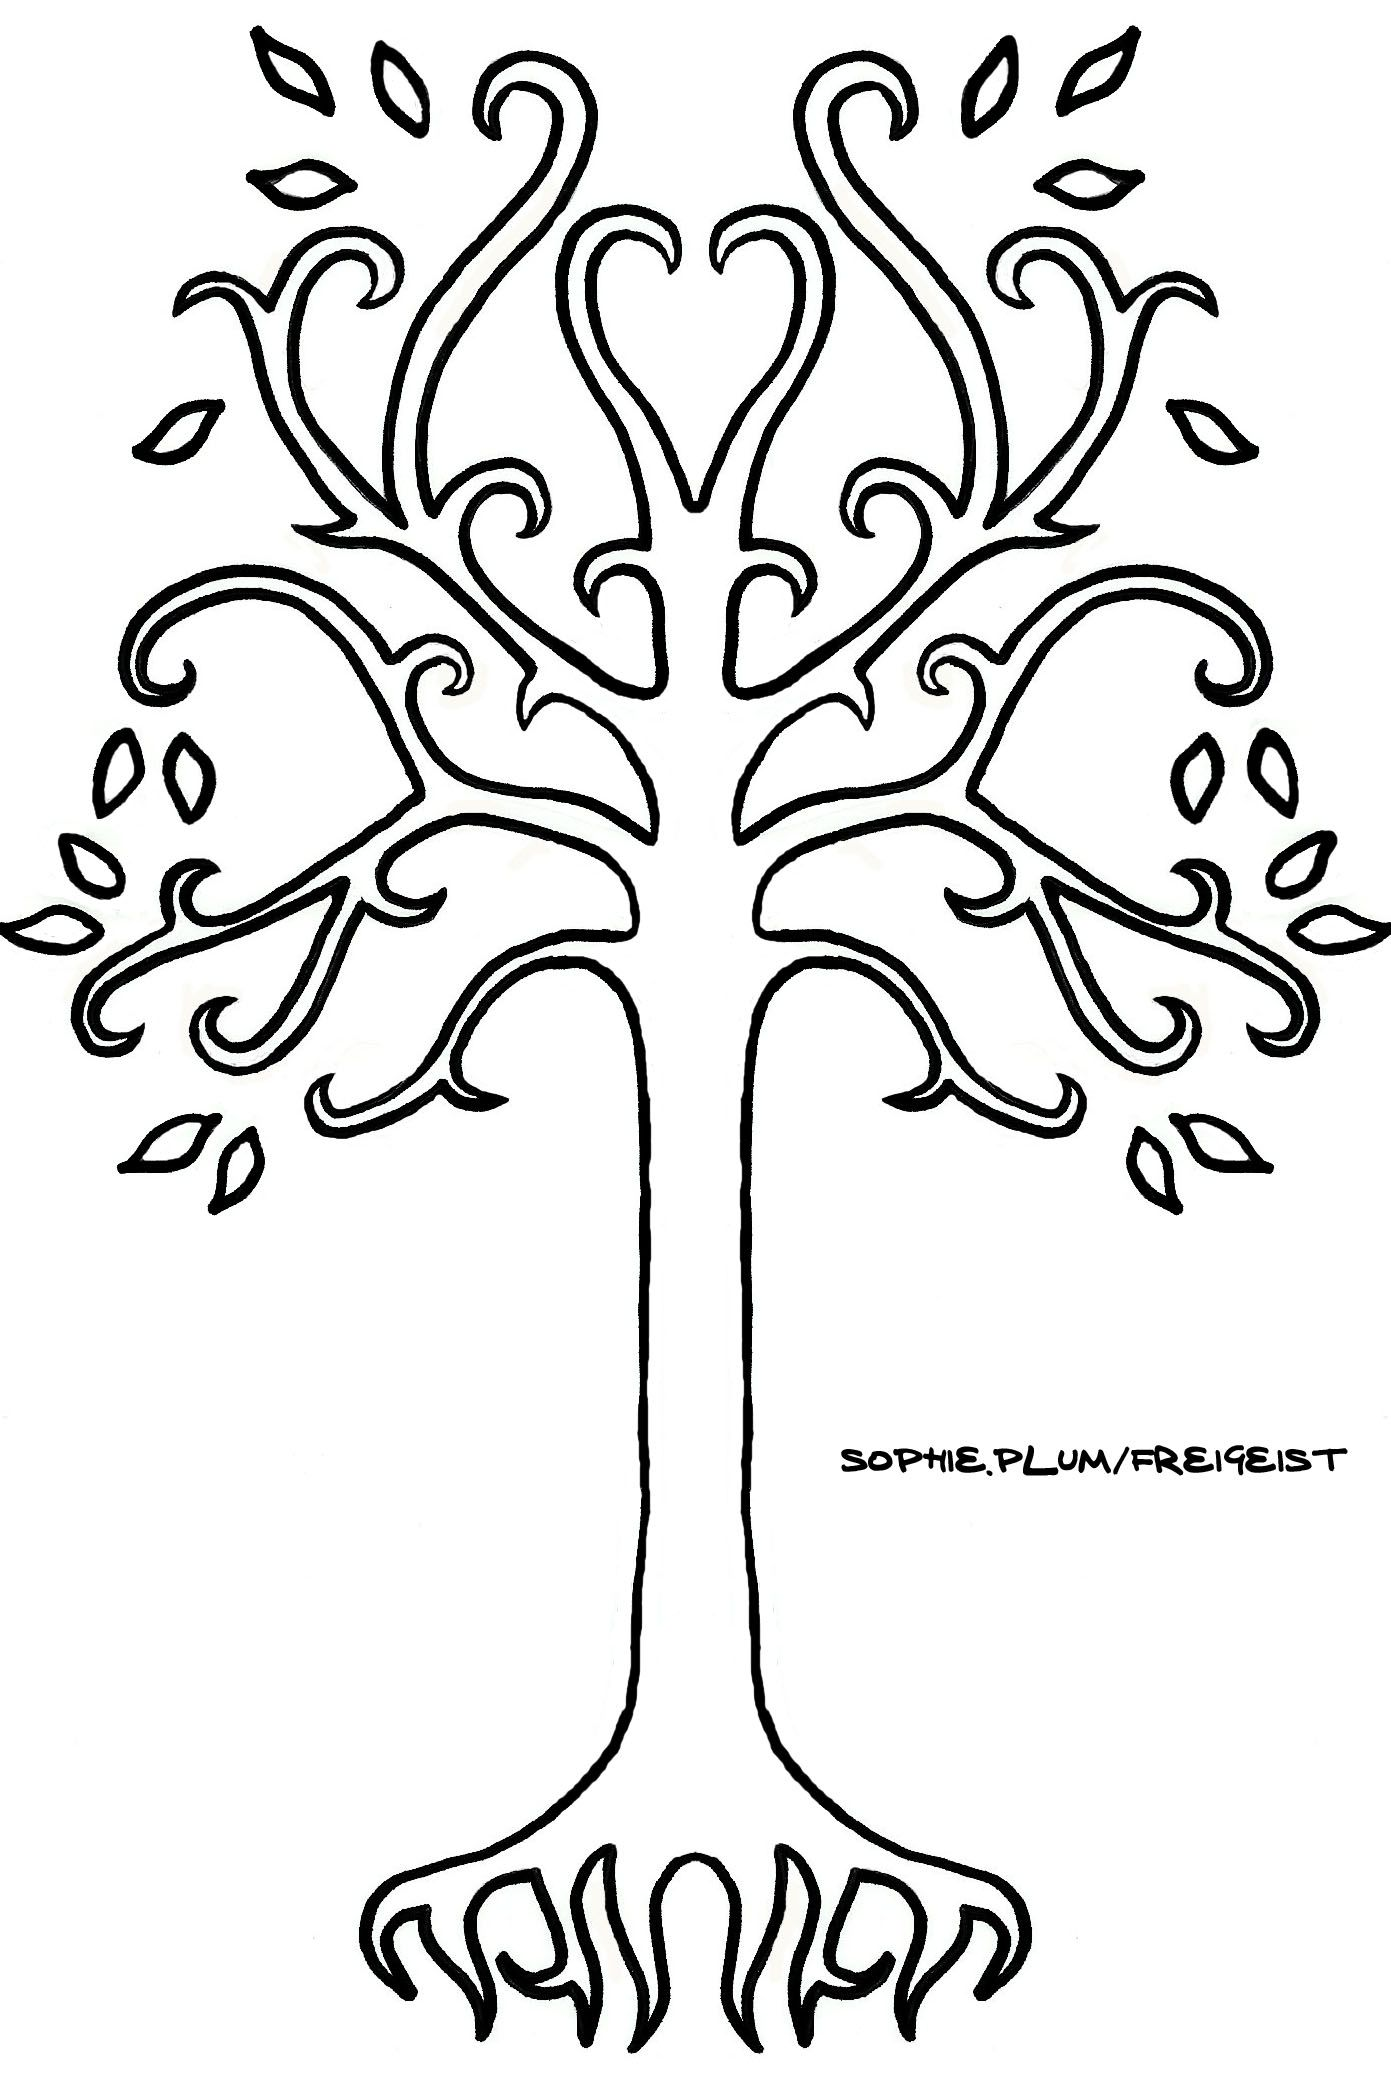 The Lord Of The Rings Gondor Pin//Brooch Black and White Tree of Gondor Cosplay.